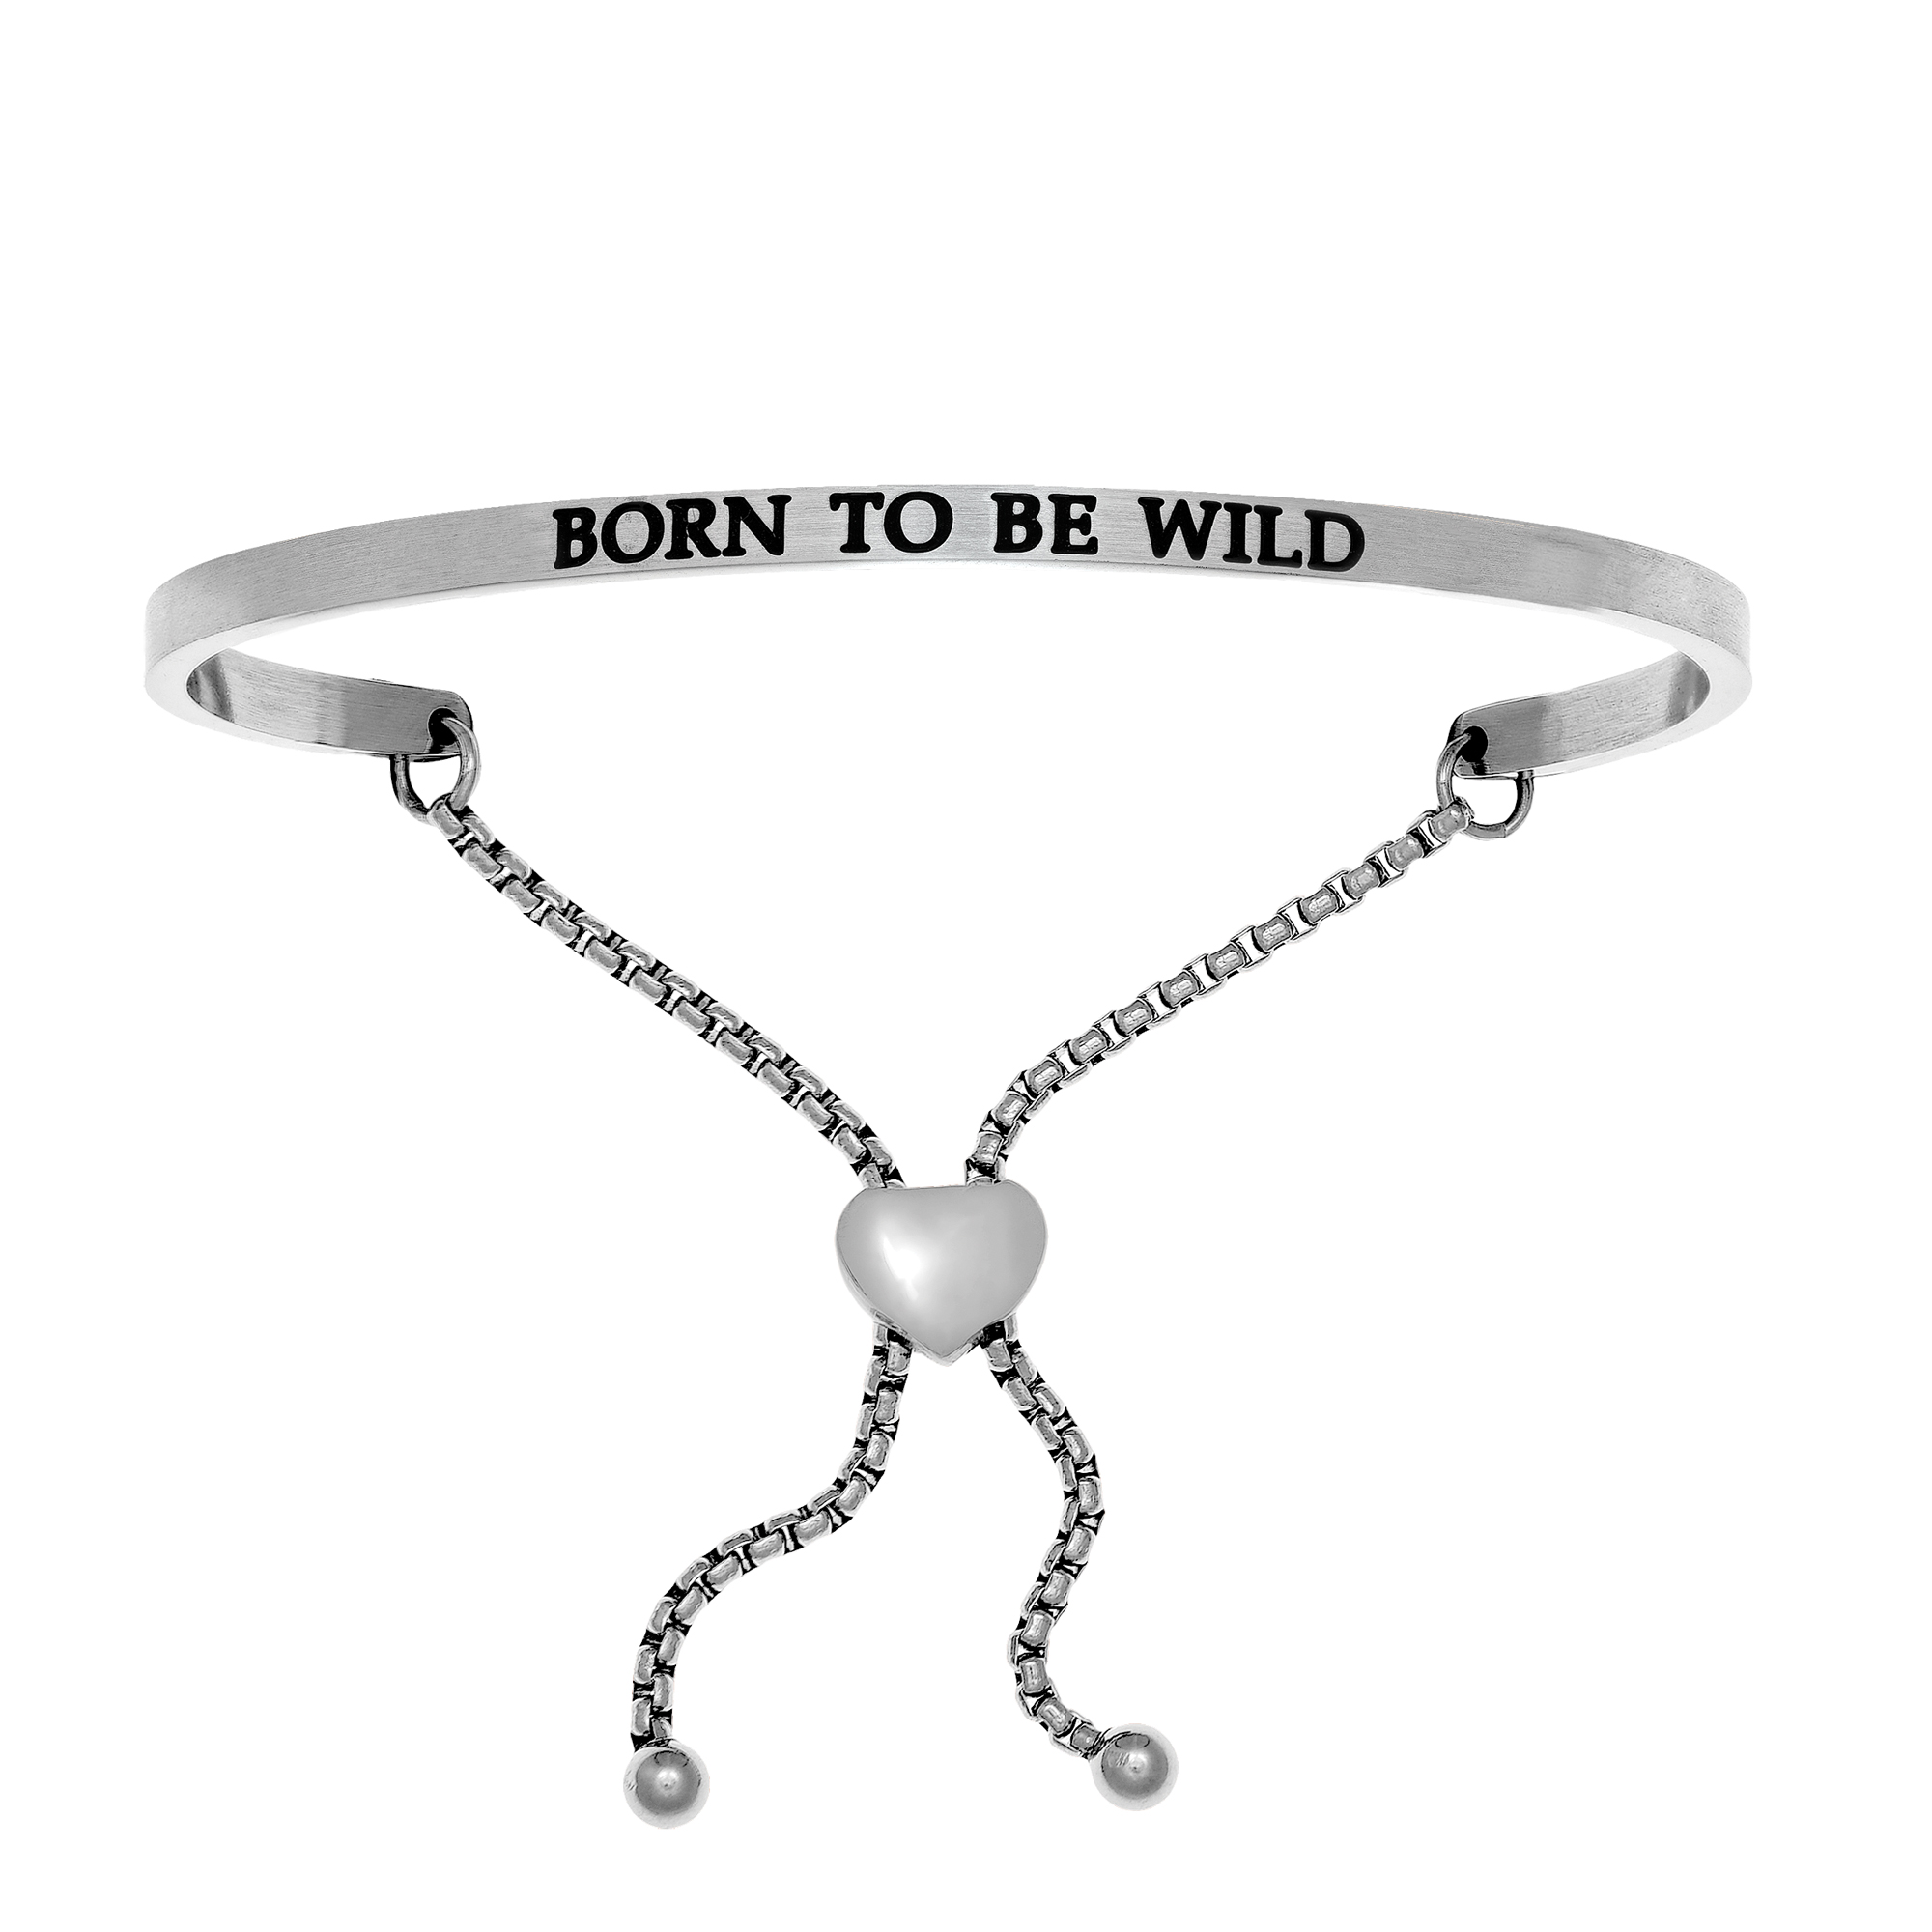 Intuitions Stainless Steel BORN TO BE WILD Diamond Accent Adjustable Bracelet Each of these bracelets carries a personal message of inspiration, spirituality or just plain fun. Meant to be worn alone or stacked together for a smart, contemporary look, they're a great self-purchase or as a gift for family or friends. Intuitions are made of stainless steel and come in two styles standard cuff or friendship and fit practically any wrist. Intuitions Jewelry makes the difference in your daily life by designing and creating bracelets and bangles with motivational quotes to inspire you and your loved ones. Giving back $.25 of each bracelet to BABY2BABY